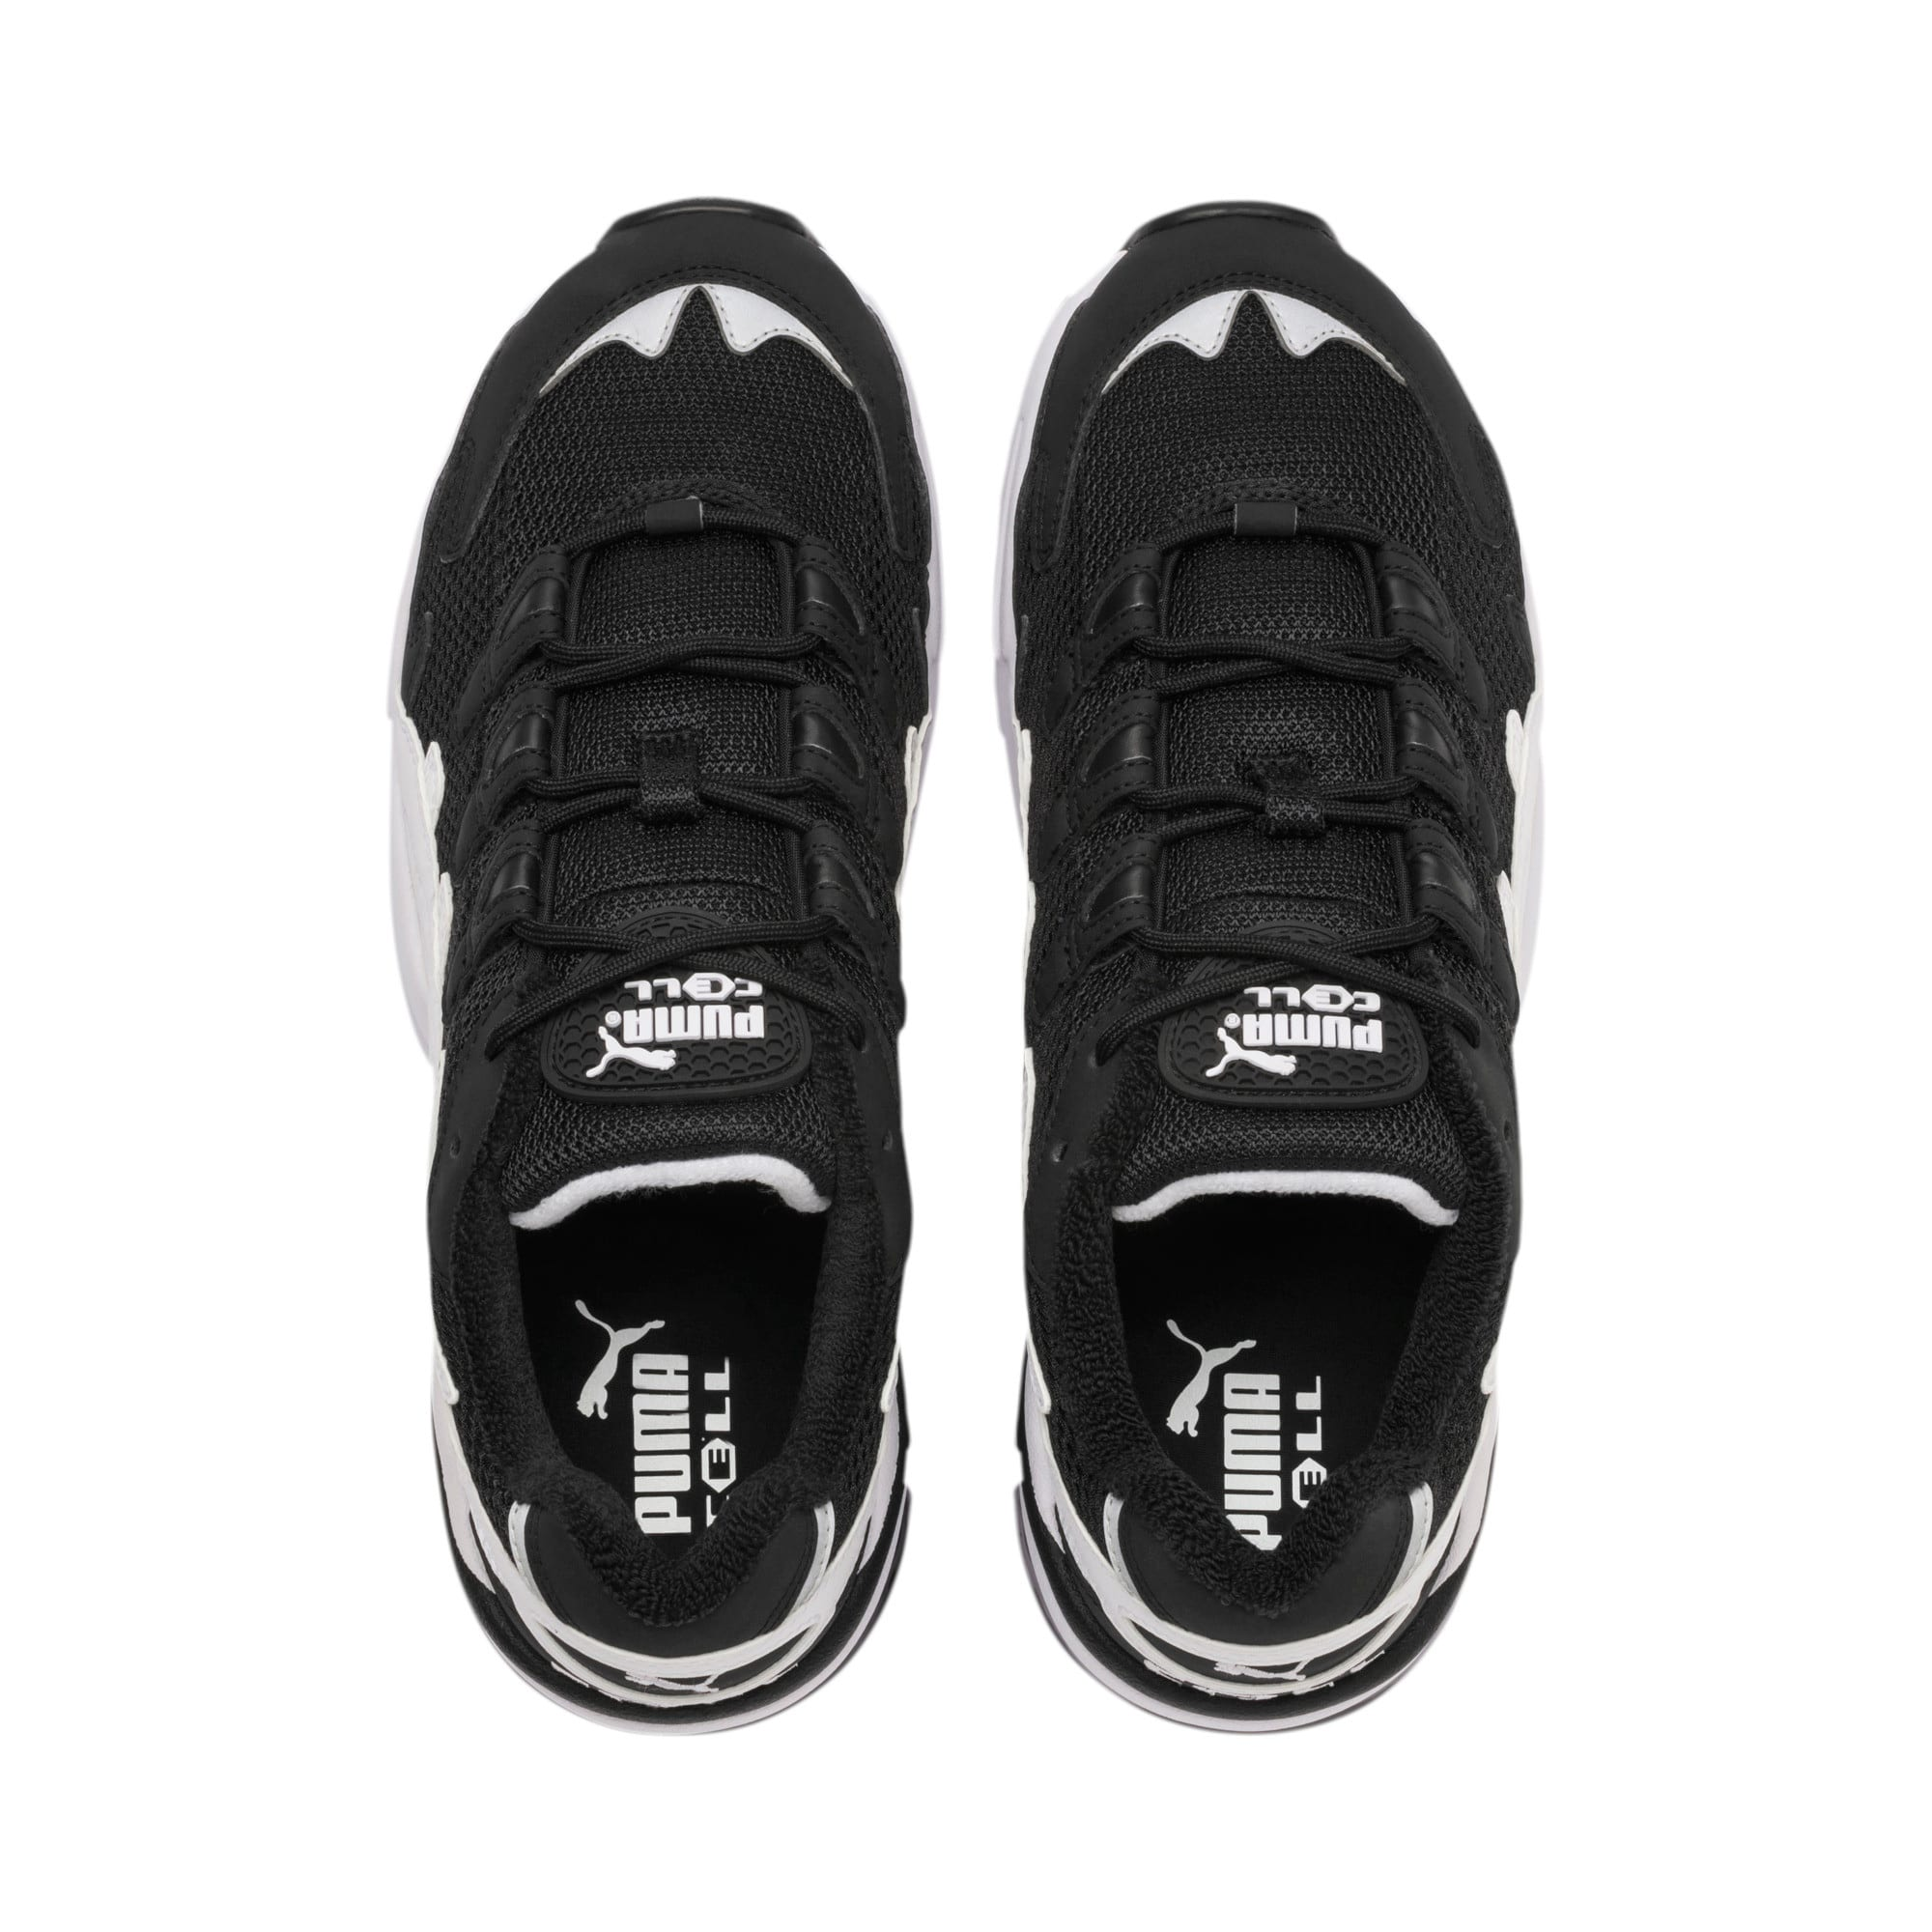 Thumbnail 7 of CELL Alien OG Sneaker, Puma Black-Puma White, medium